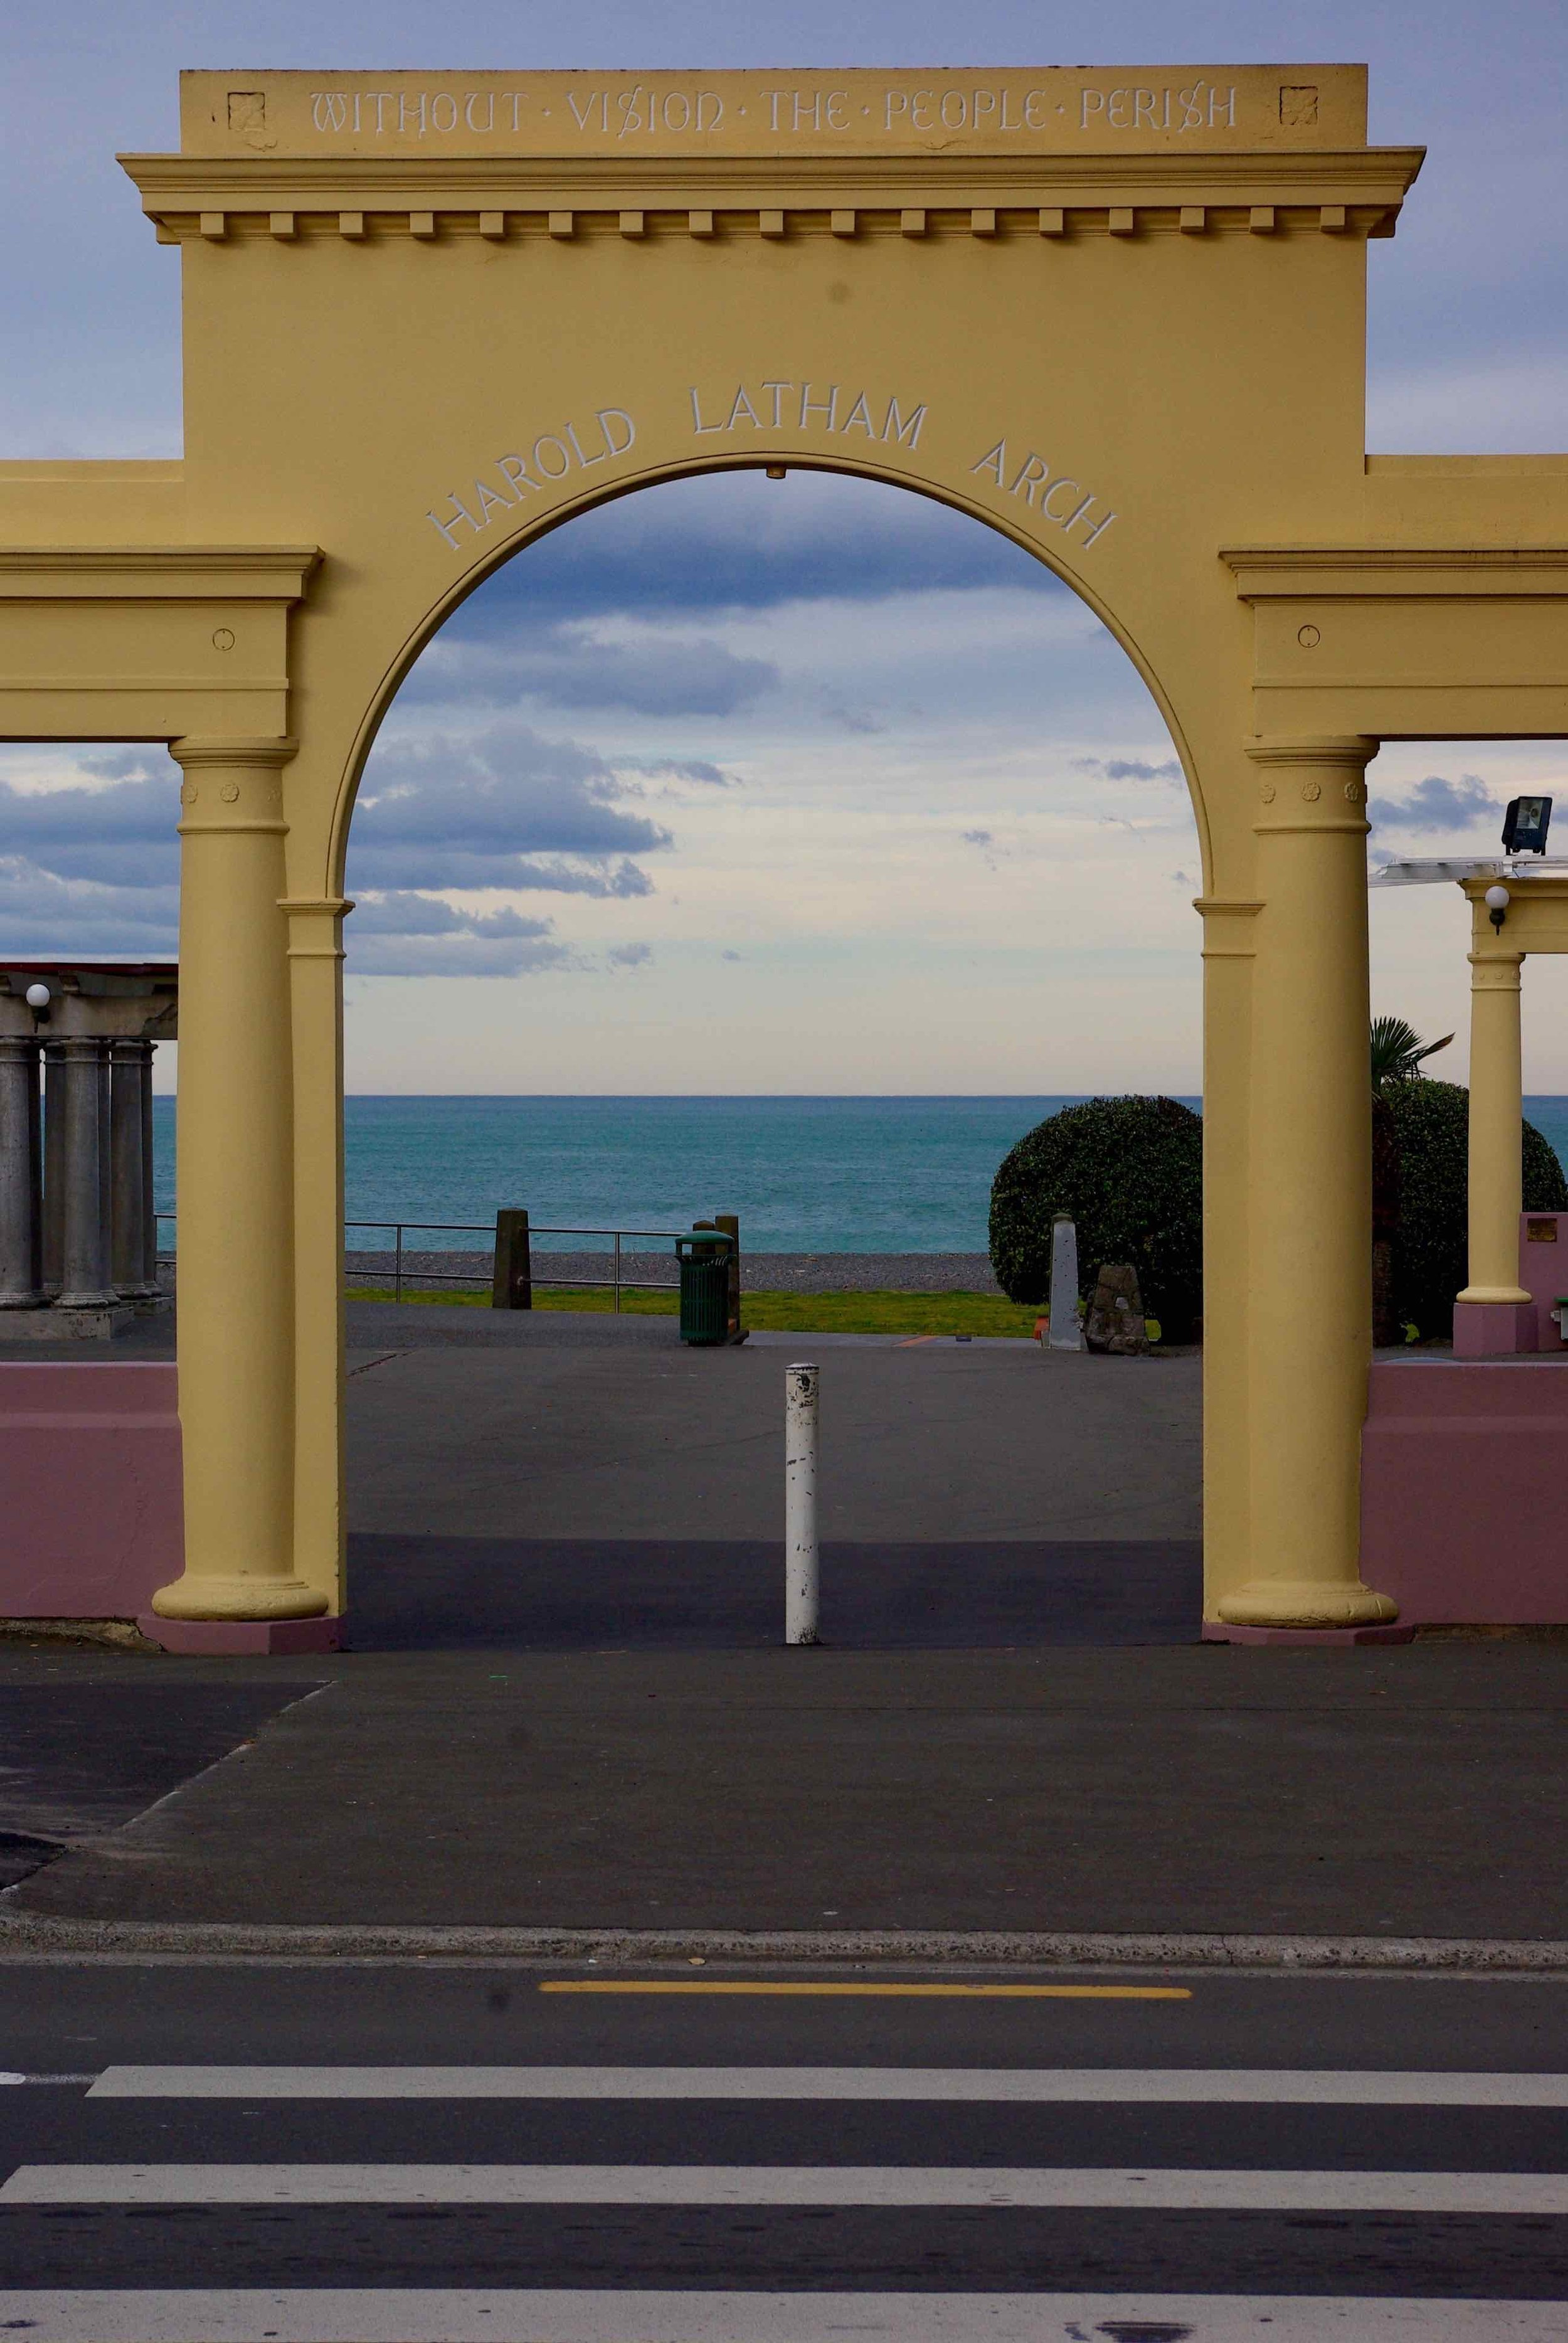 Archway, Napier, 2008 ©